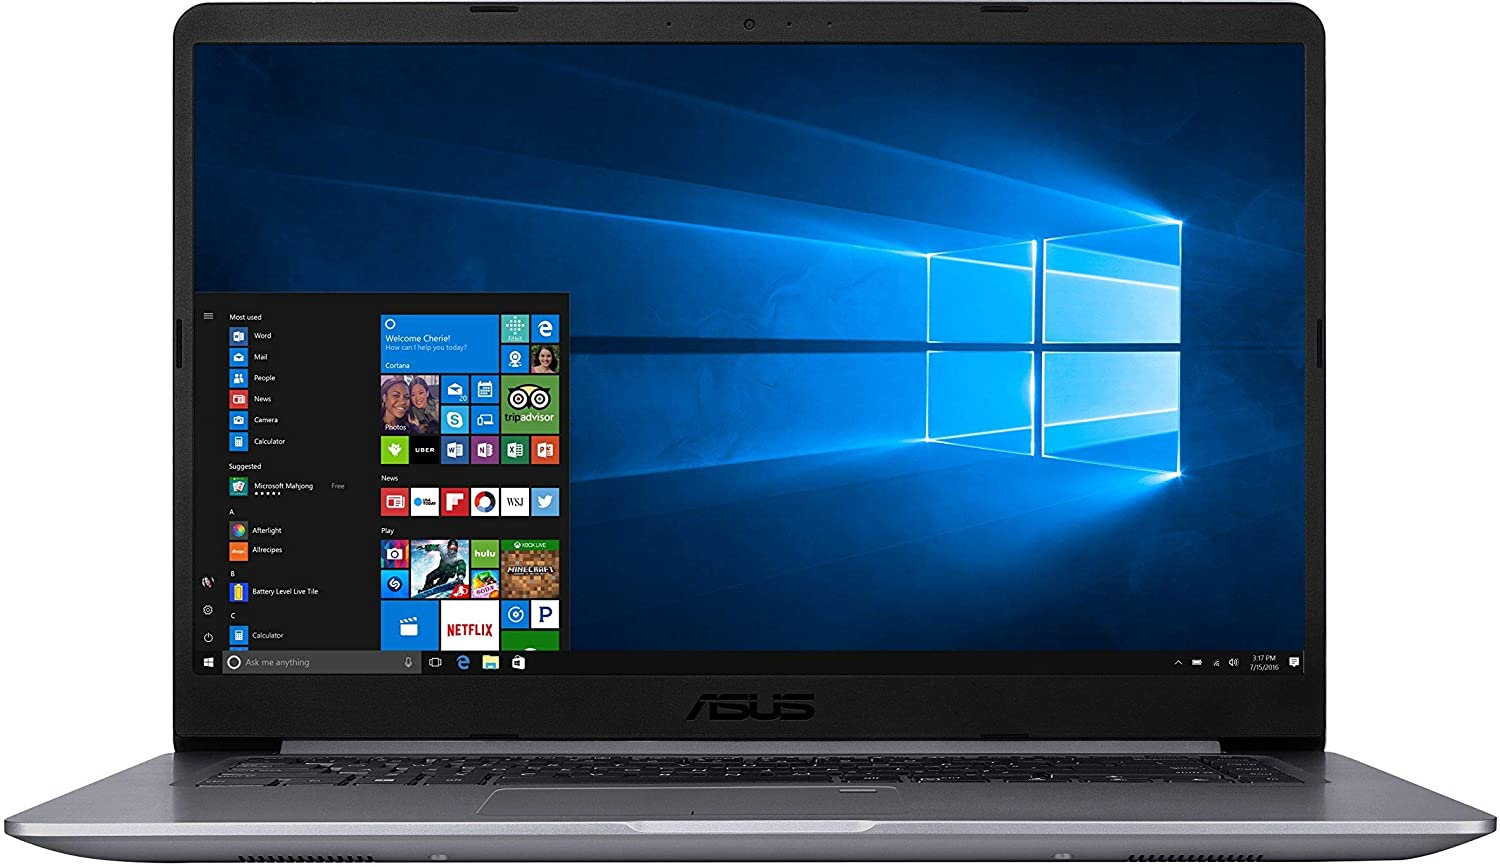 Asus K510uq Bq667t 2017 156 Inch Laptop 8th Gen I5 8250u 8gb 1tb Kabel Touchpad 8pin 05 20cm